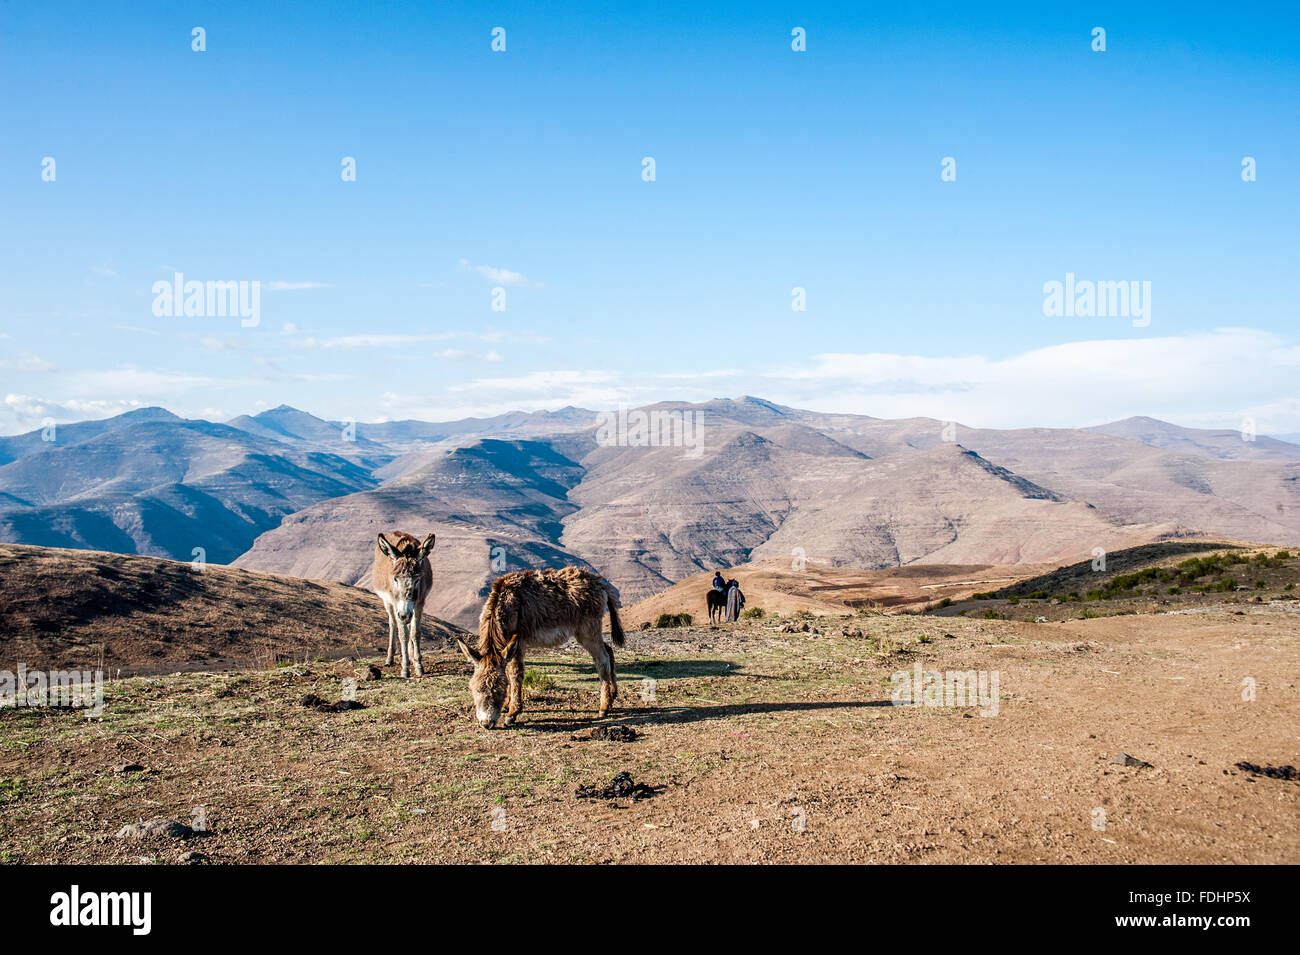 Donkeys grazing and a person on horseback in the mountains of Lesotho, Africa - Stock Image